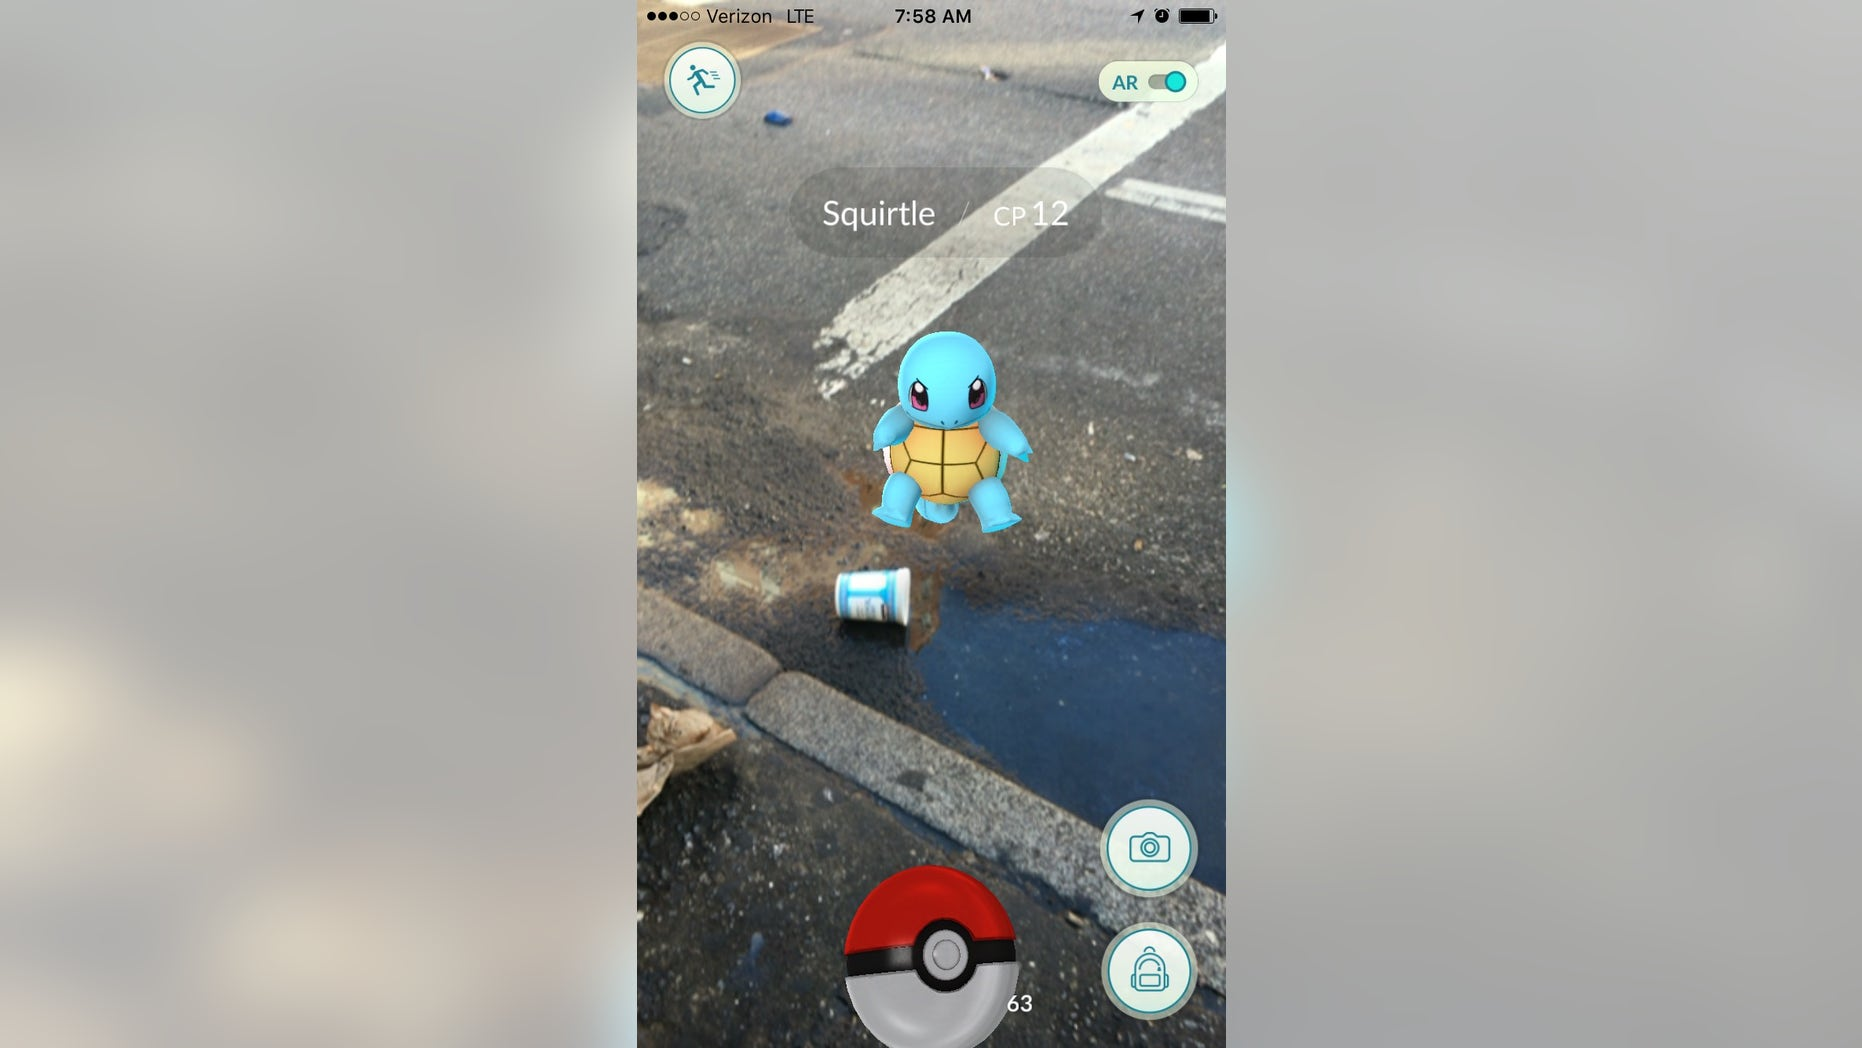 Pokemon Go's Squirtle shows up on the streets of New York City.